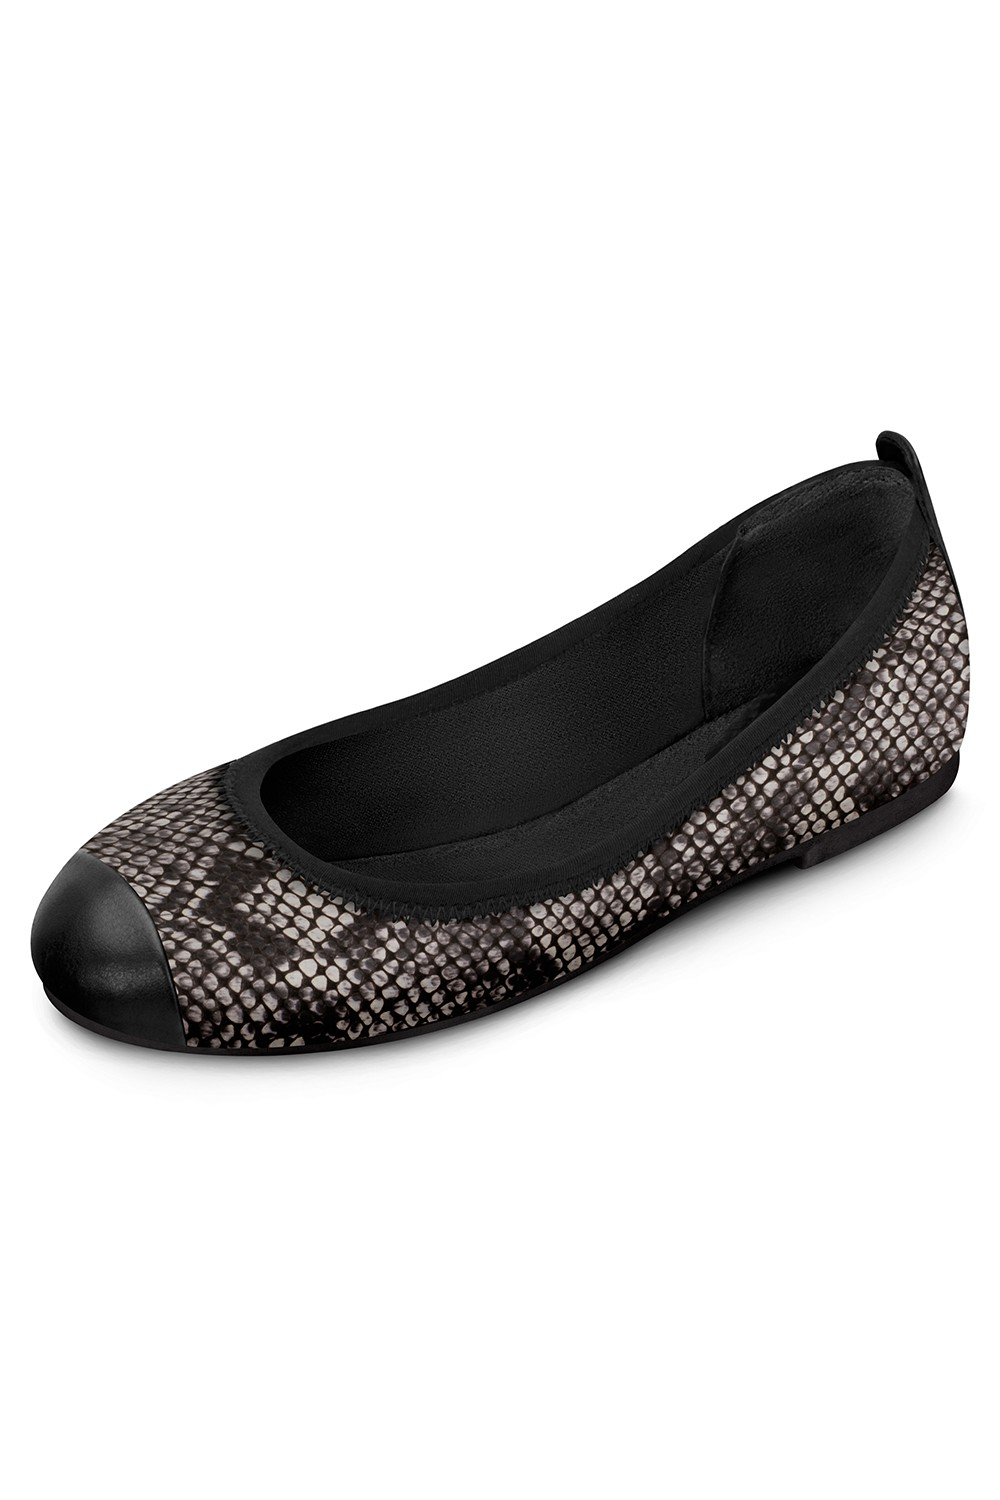 Python - Girls Girls Fashion Shoes